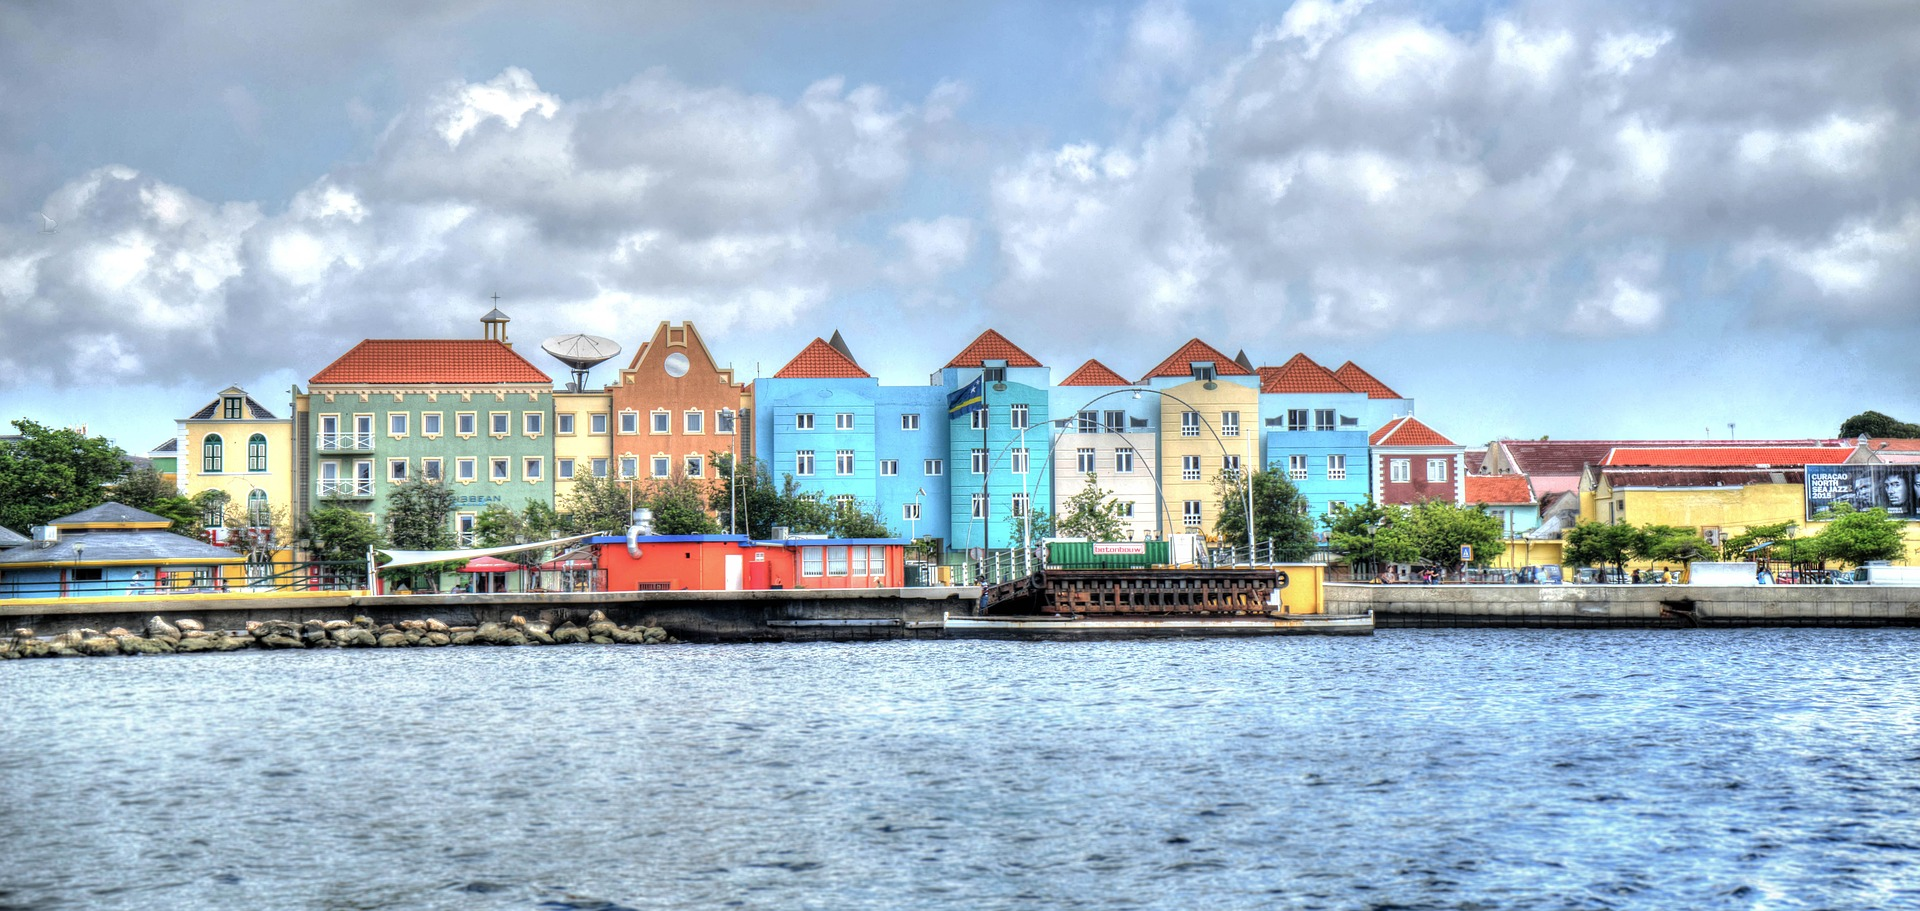 Counting Down to Curacao – Jason's Xplor-TK trip